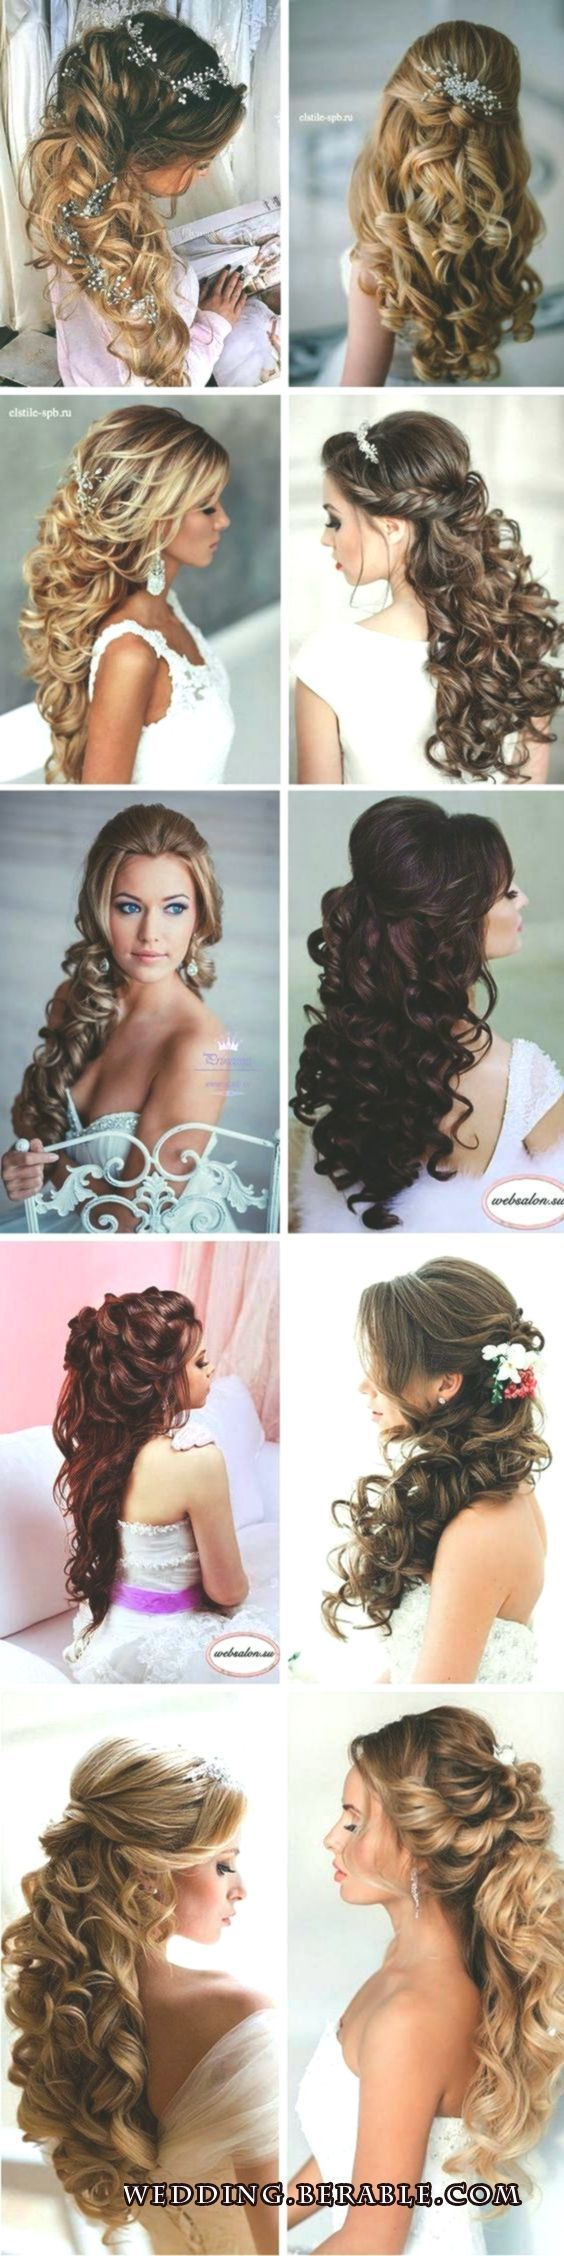 Wedding Hairstyles For Short Hair With Veil And Tiara neither Wedding Rings Big